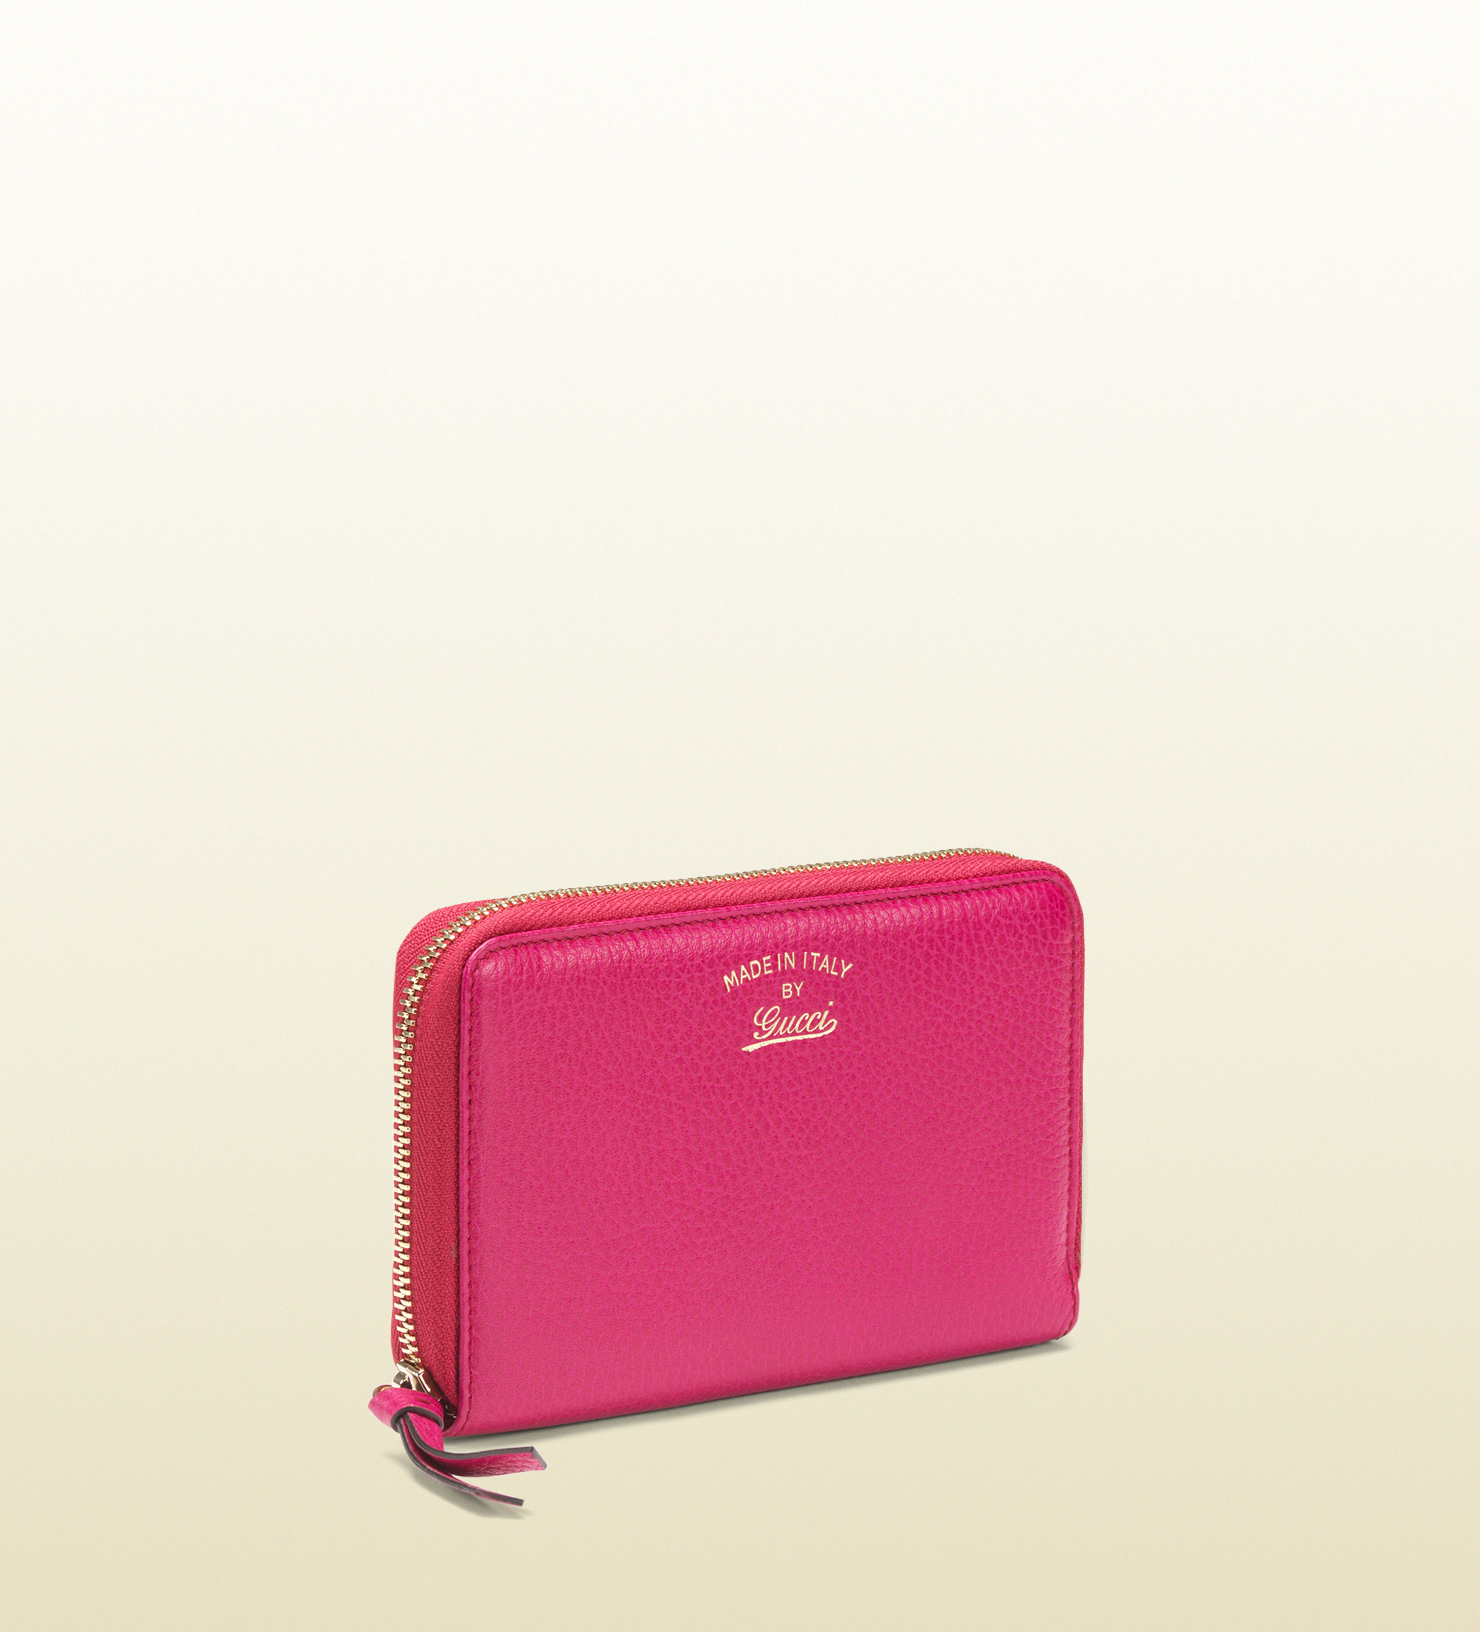 1b5f8827f4d4 Lyst - Gucci Swing Leather Zip Around Wallet in Pink